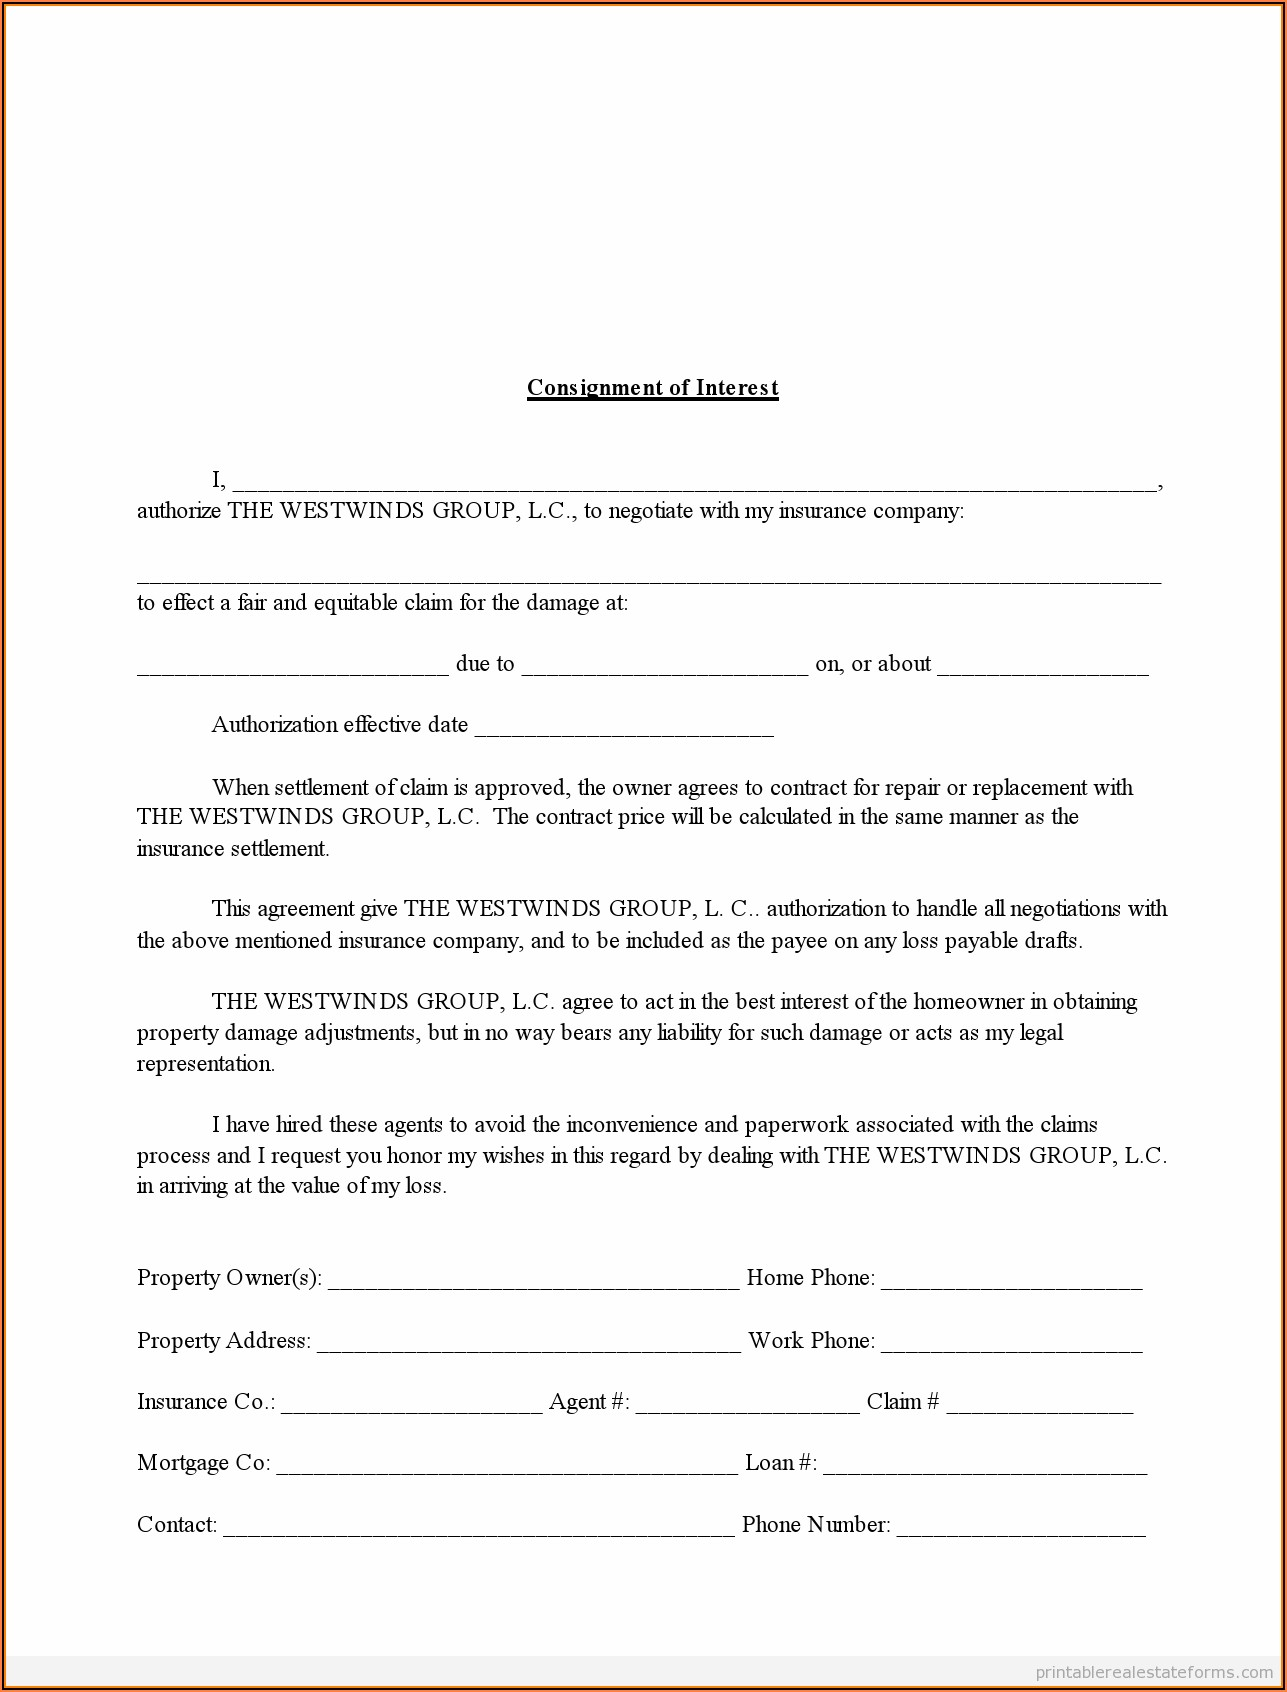 Homeowners Insurance Claim Form Template